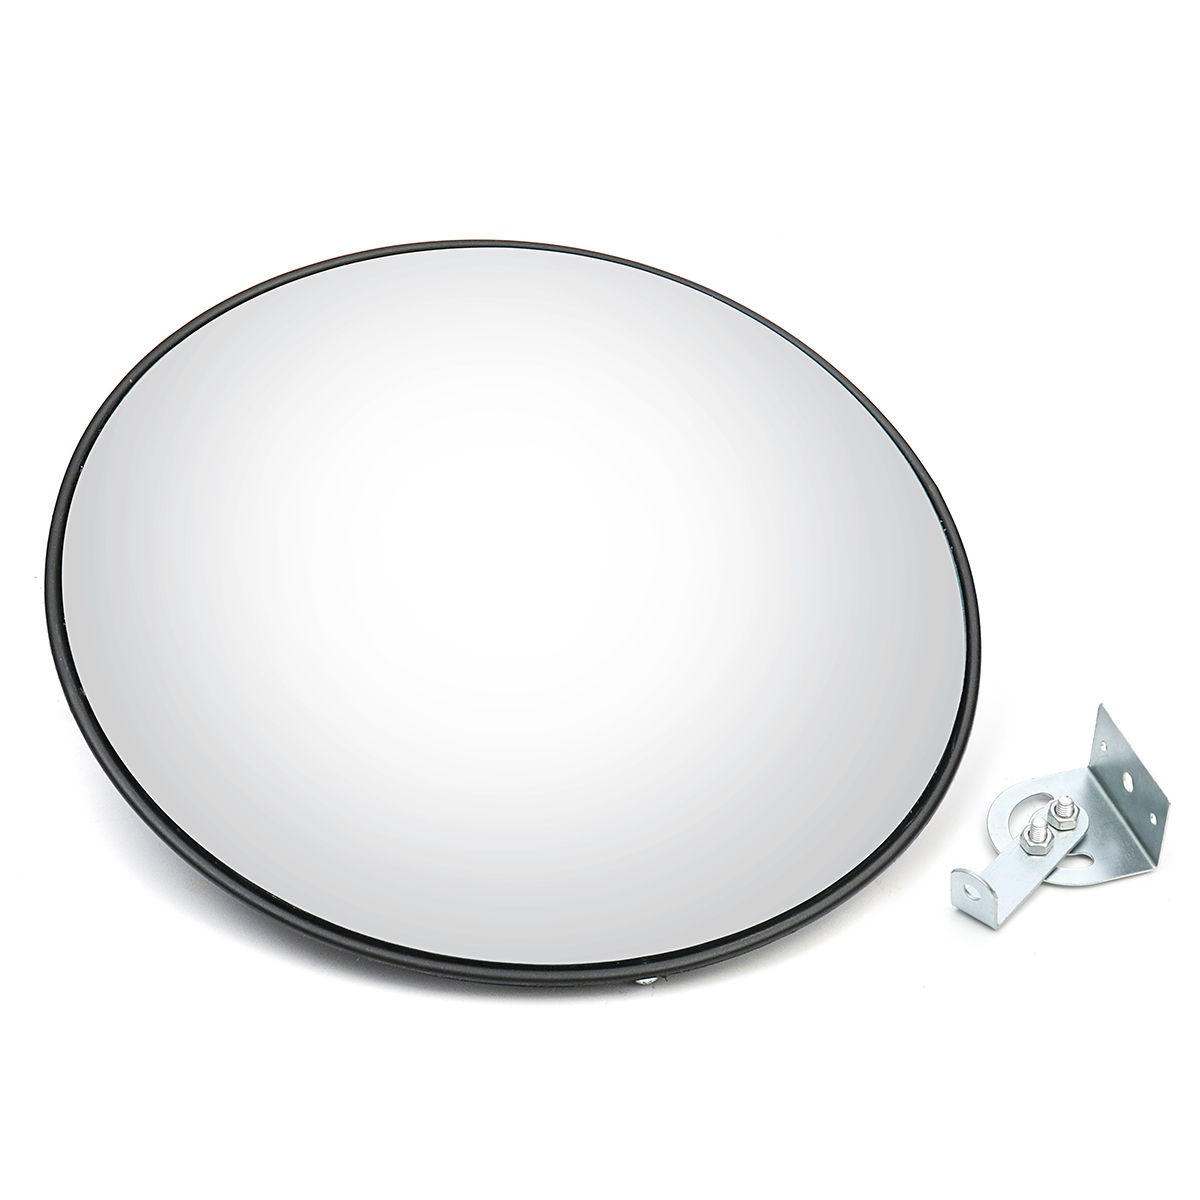 NEW 45cm Wide Angle Security Road Mirror Curved Convex For Indoor Burglar Outdoor Roadway Safety Safurance Traffic Signal Mirror